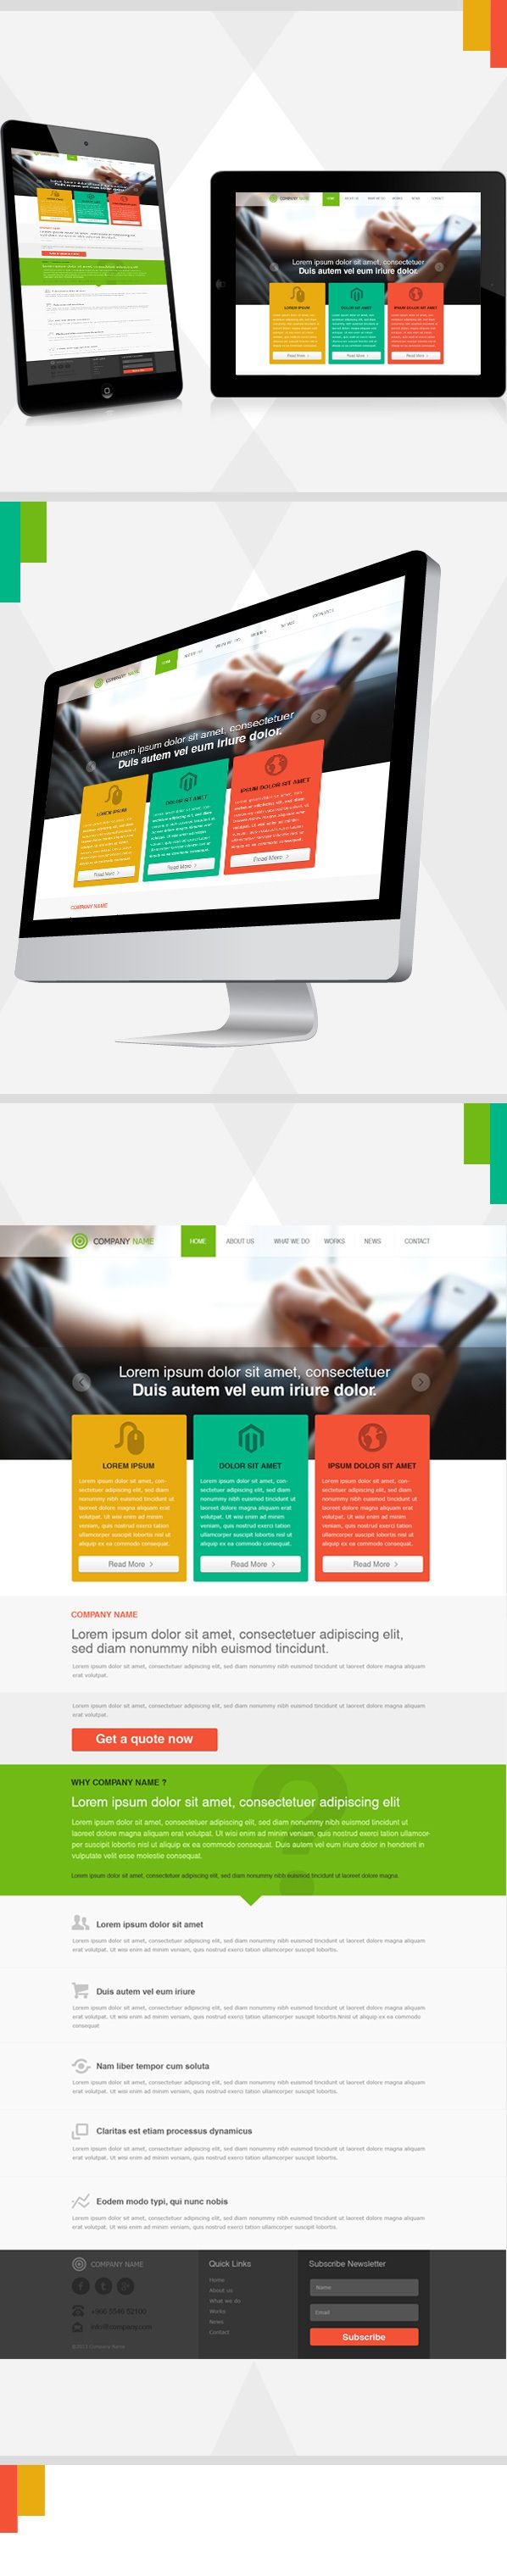 Design Template by Monish , via Behance